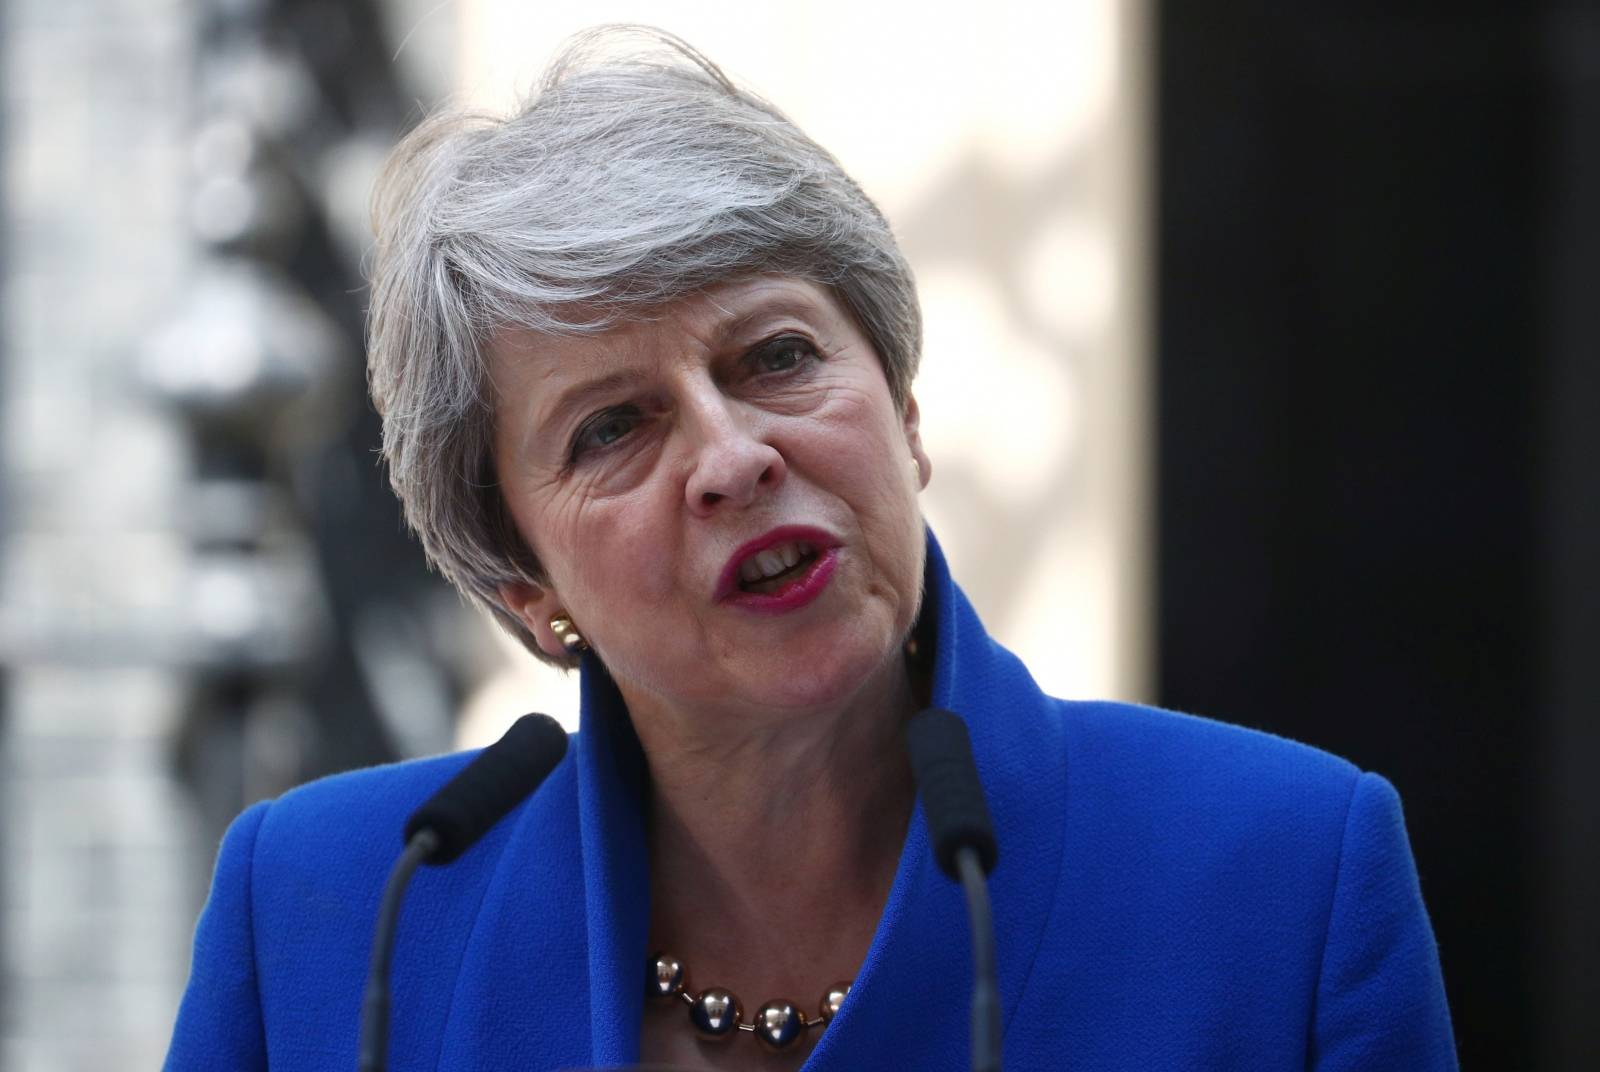 Theresa May delivers a speech on her last day in office as Britain's Prime Minister, outside Downing Street, in London